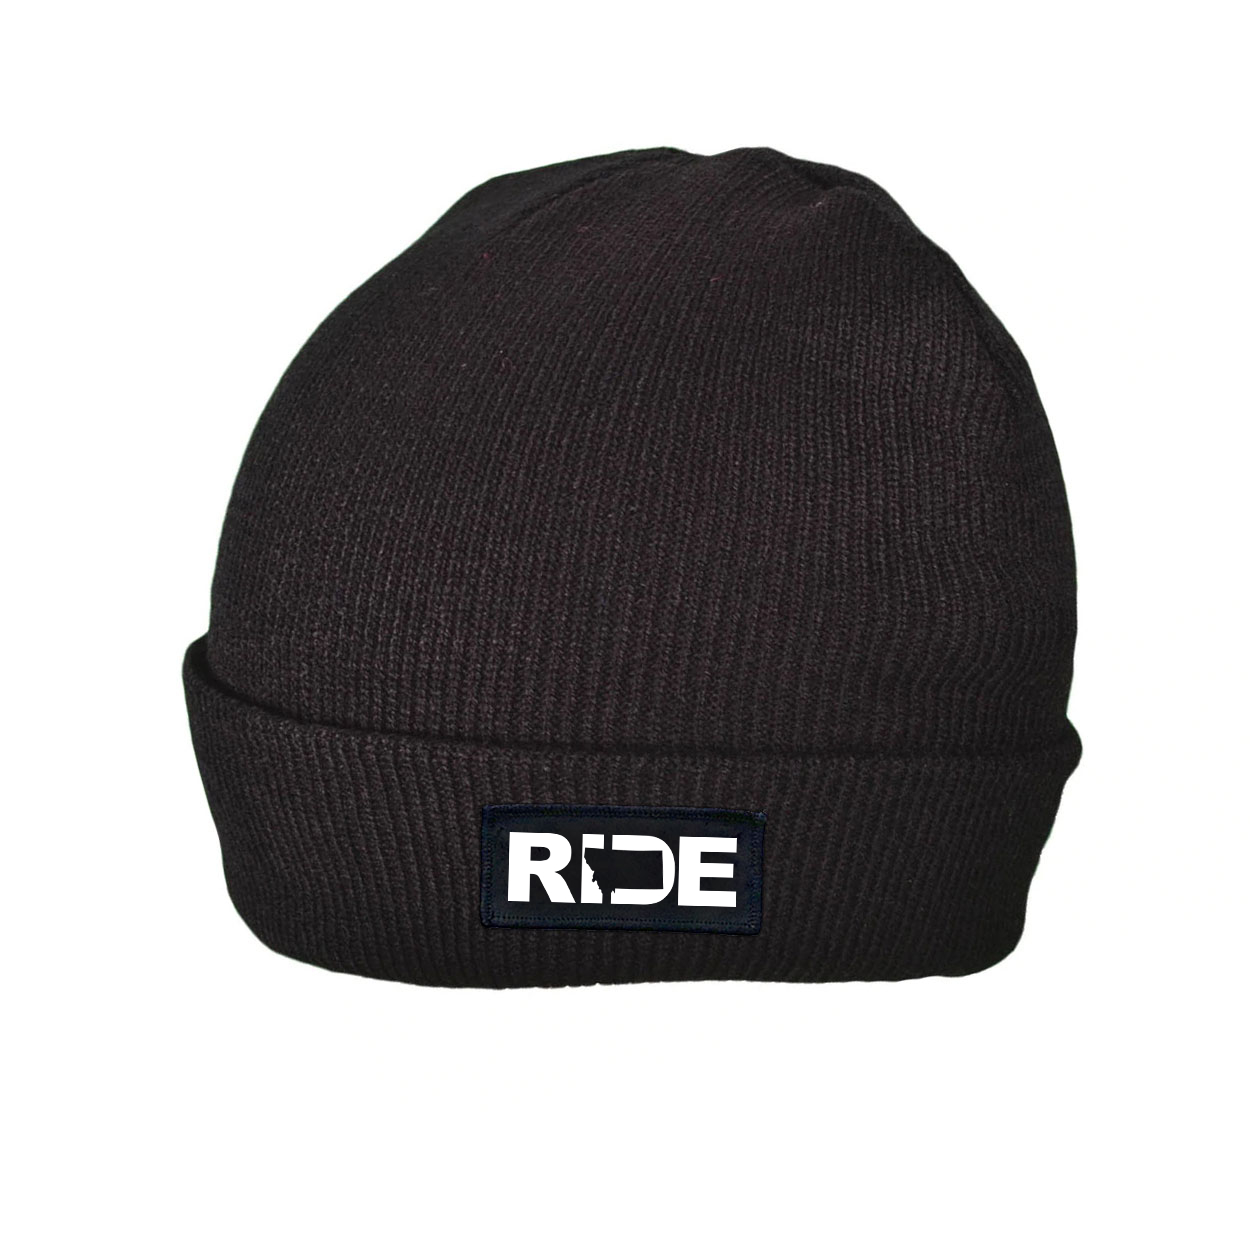 Ride Montana Night Out Woven Patch Roll Up Skully Beanie Black (White Logo)